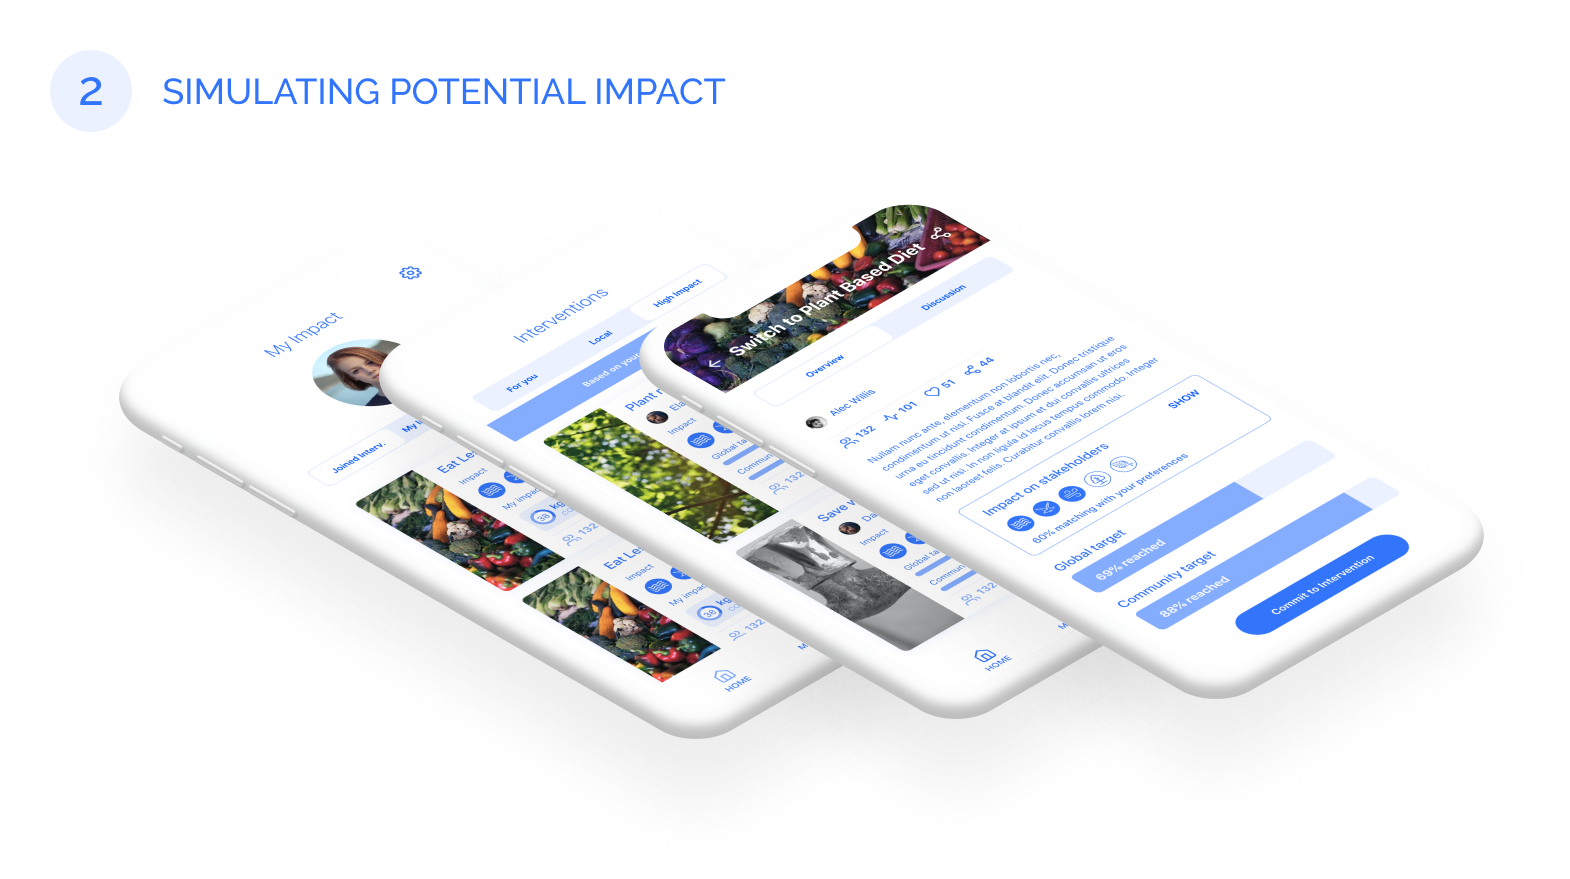 Civic AI Case Study-Image Stimulating Potential Impact